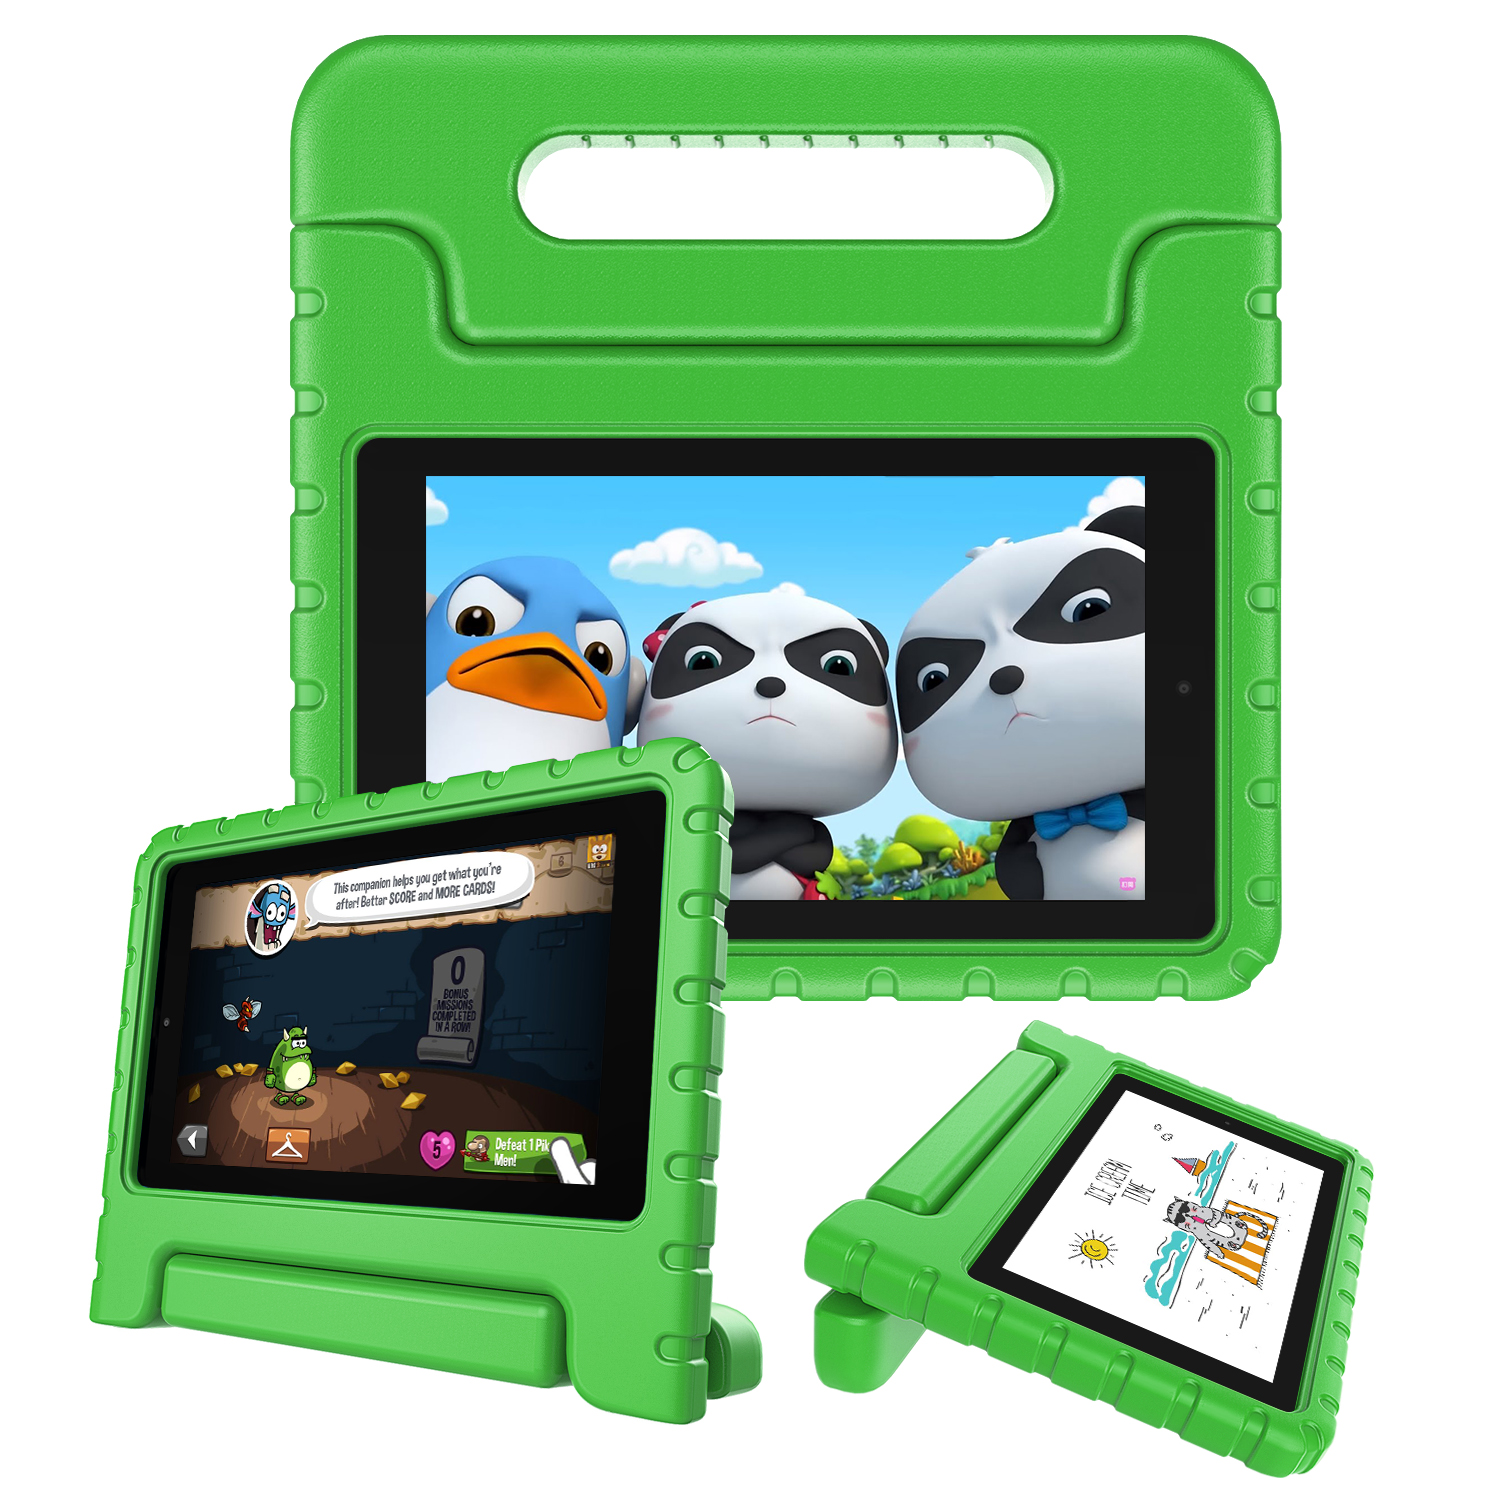 Details about For Amazon Kindle Fire 7 9th Generation 2019 ShockProof Kids  Friendly Case Cover